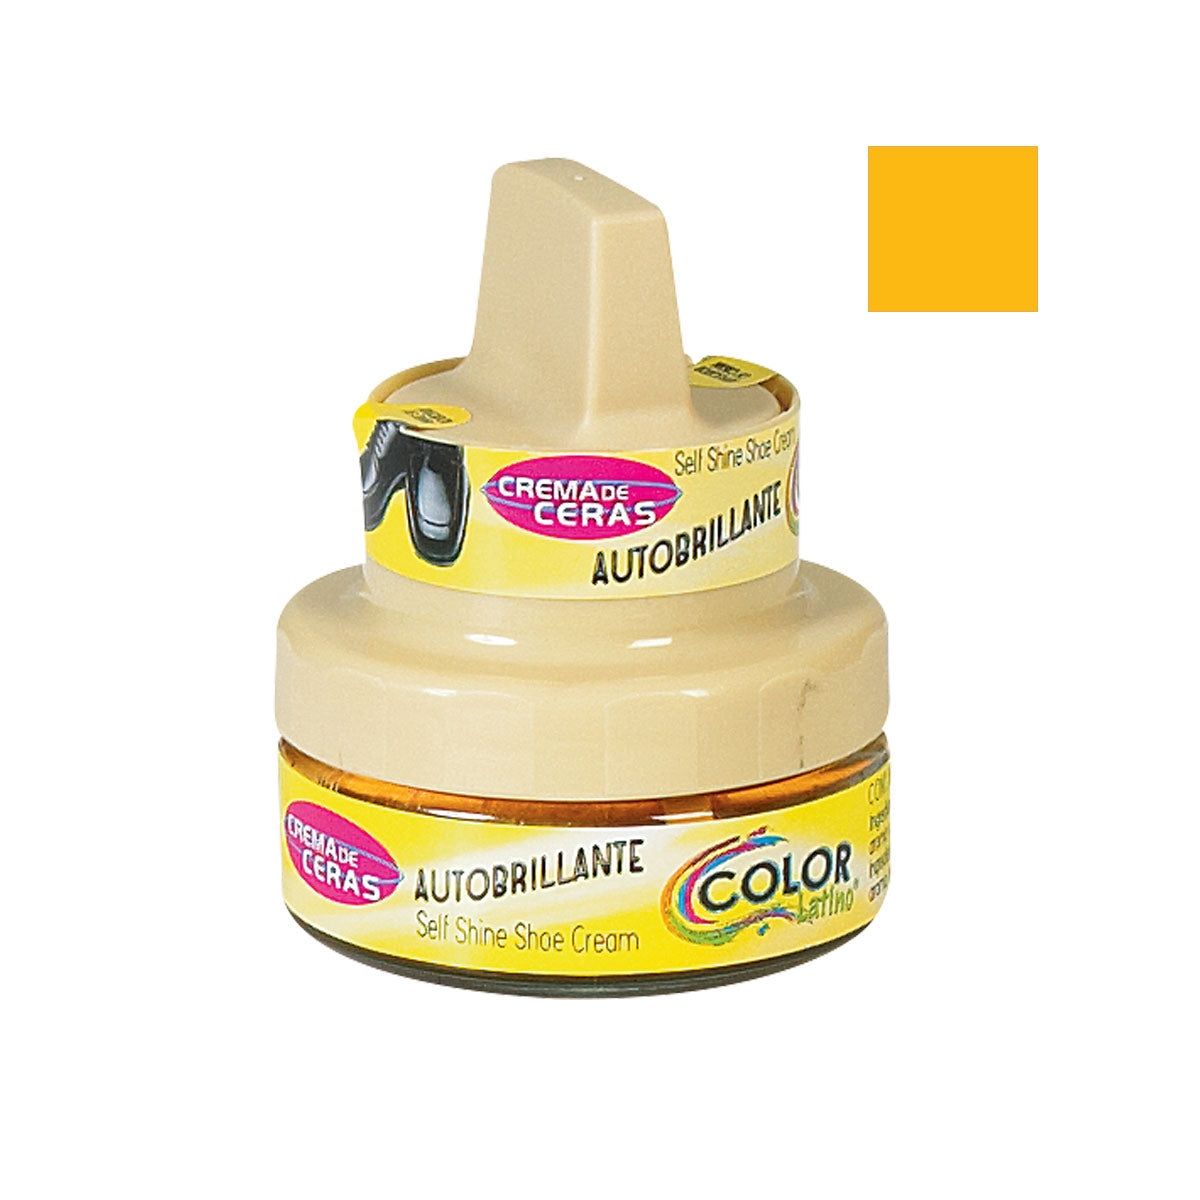 CREMA AUTOBRILLANTE 50 ml COLOR MANTEQUILLA